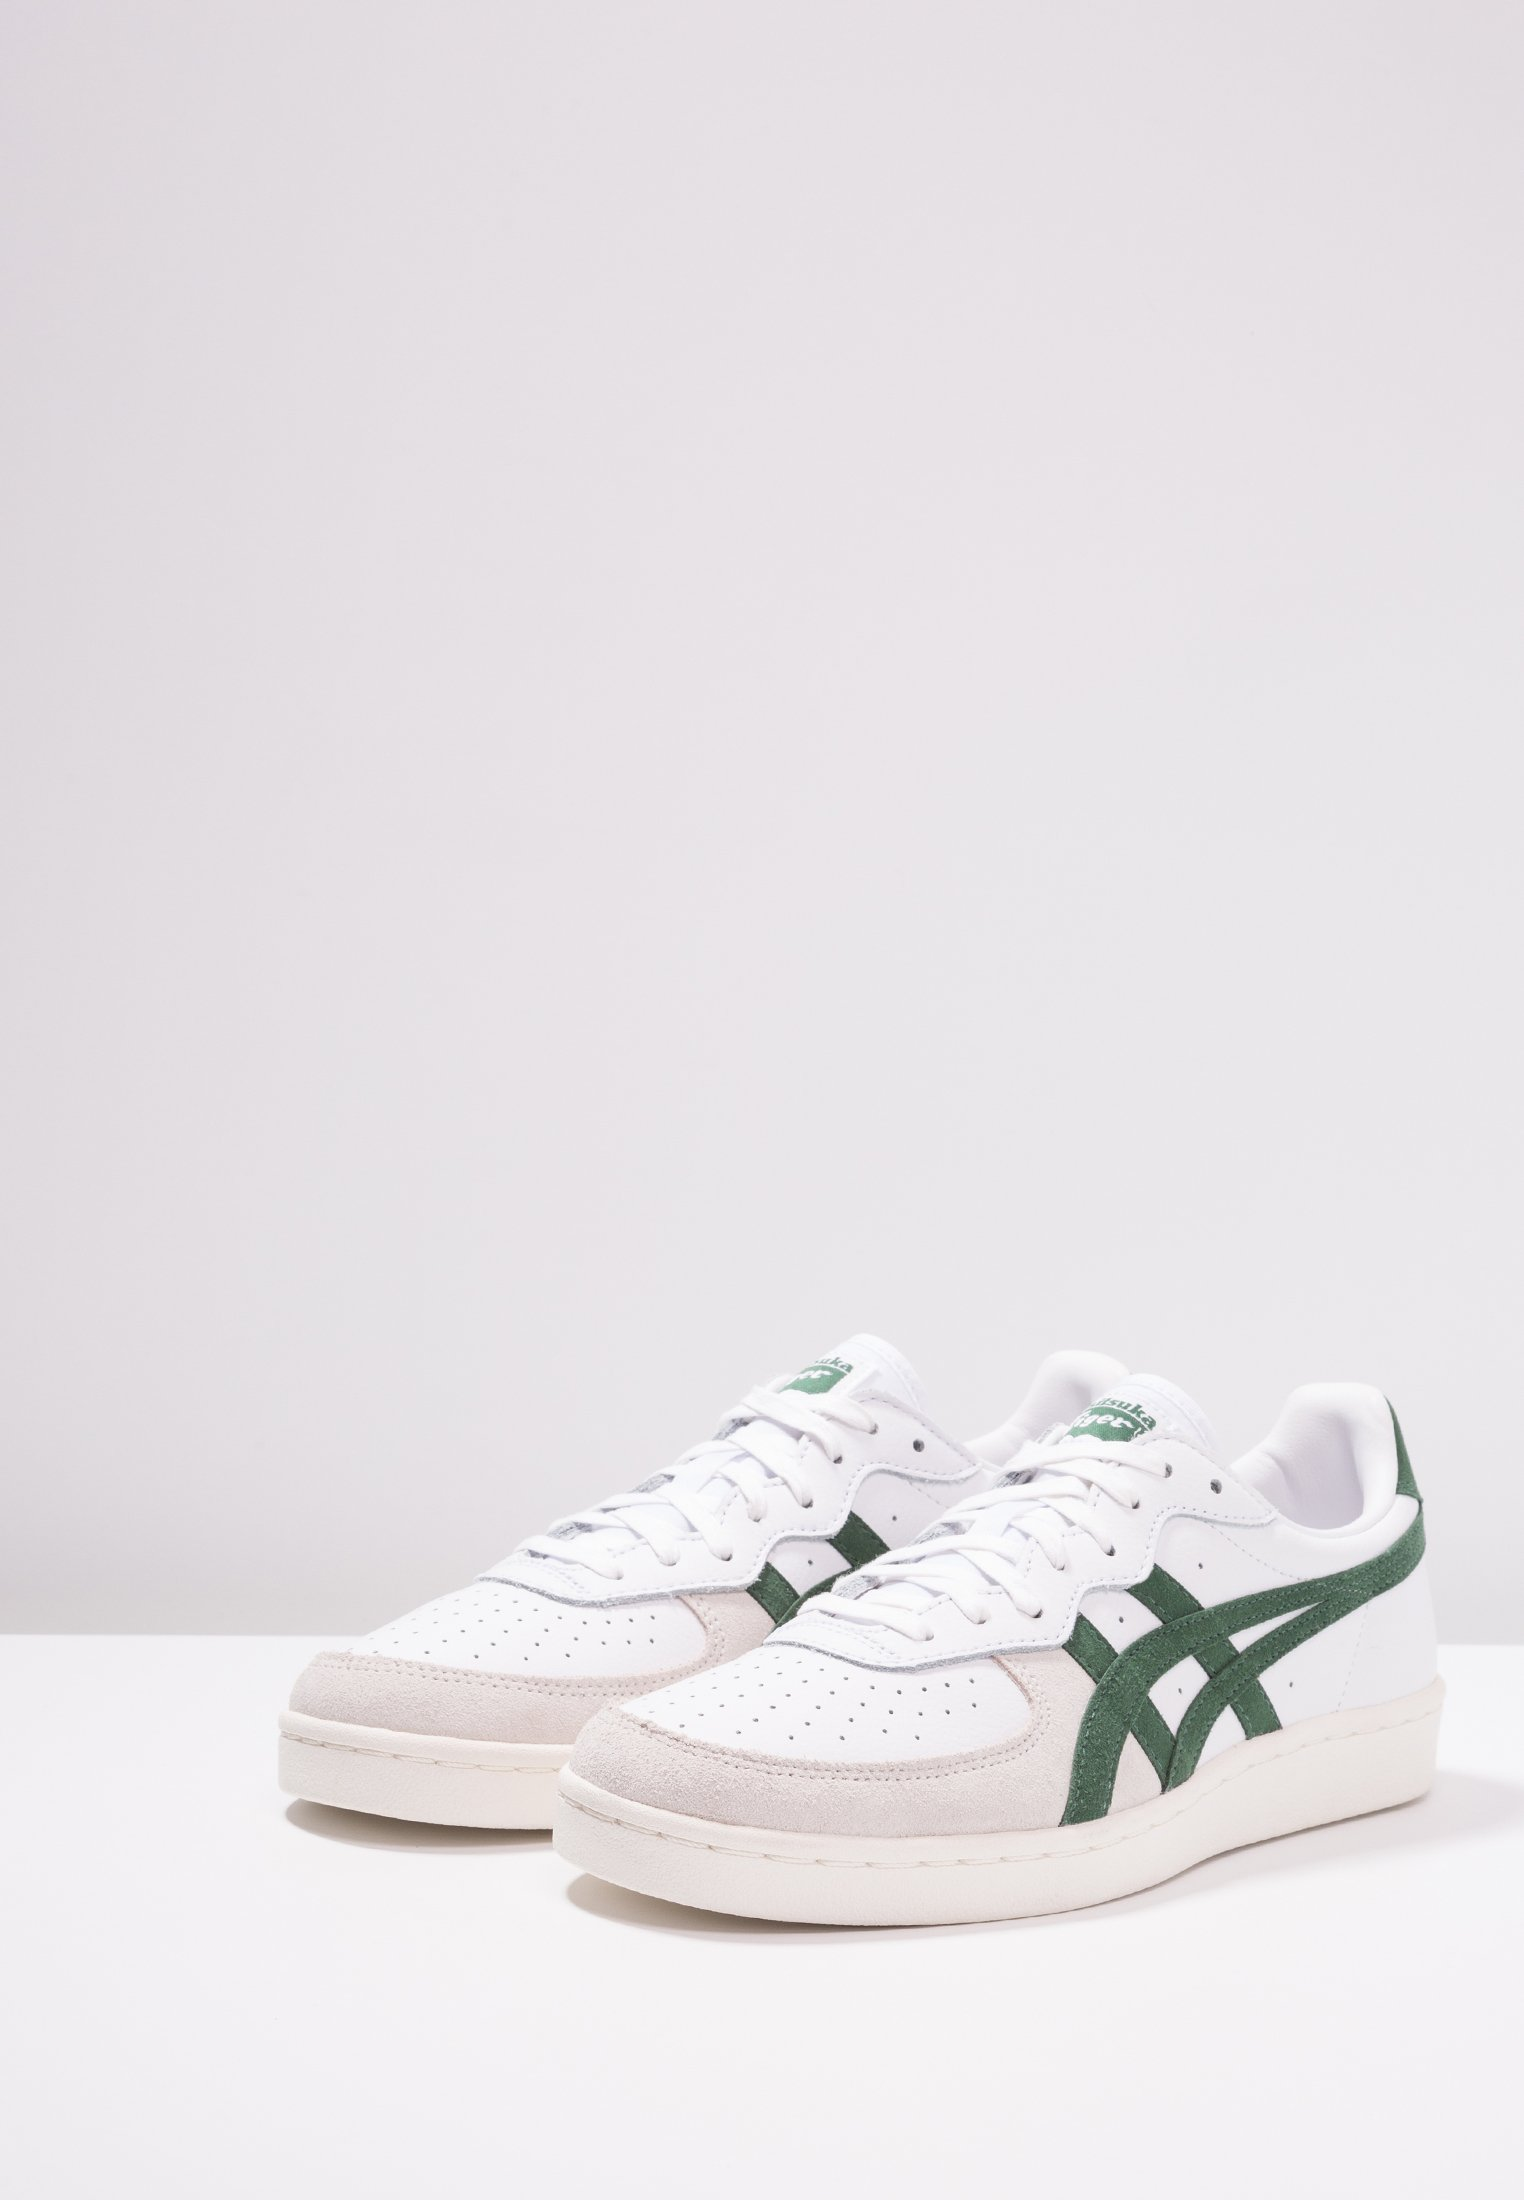 Onitsuka Tiger GSM - Sneaker low - white/hunter green/weiß - Herrenschuhe 9LUxU